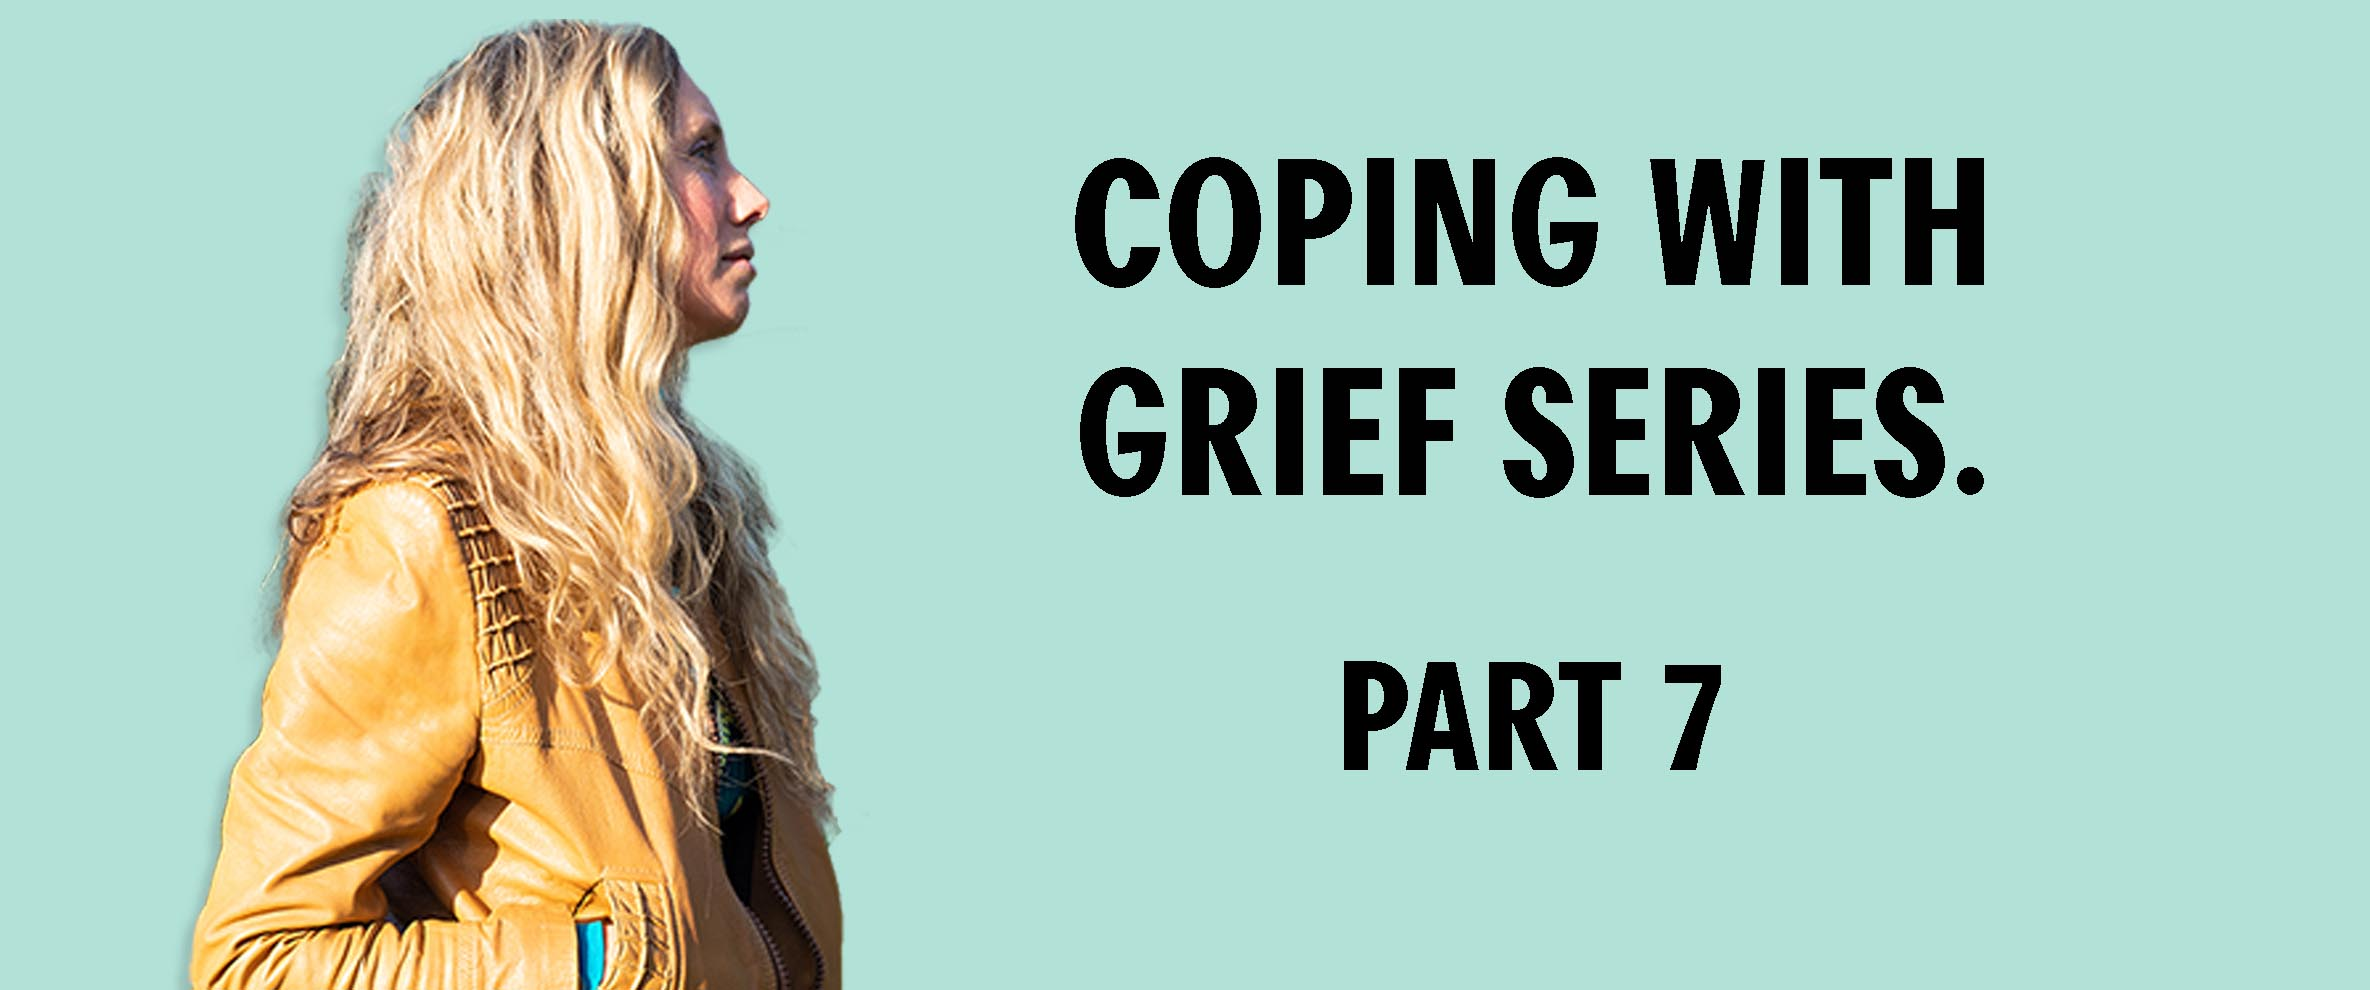 Claire Hoffman presents her Coping With Grief Series Part 7.